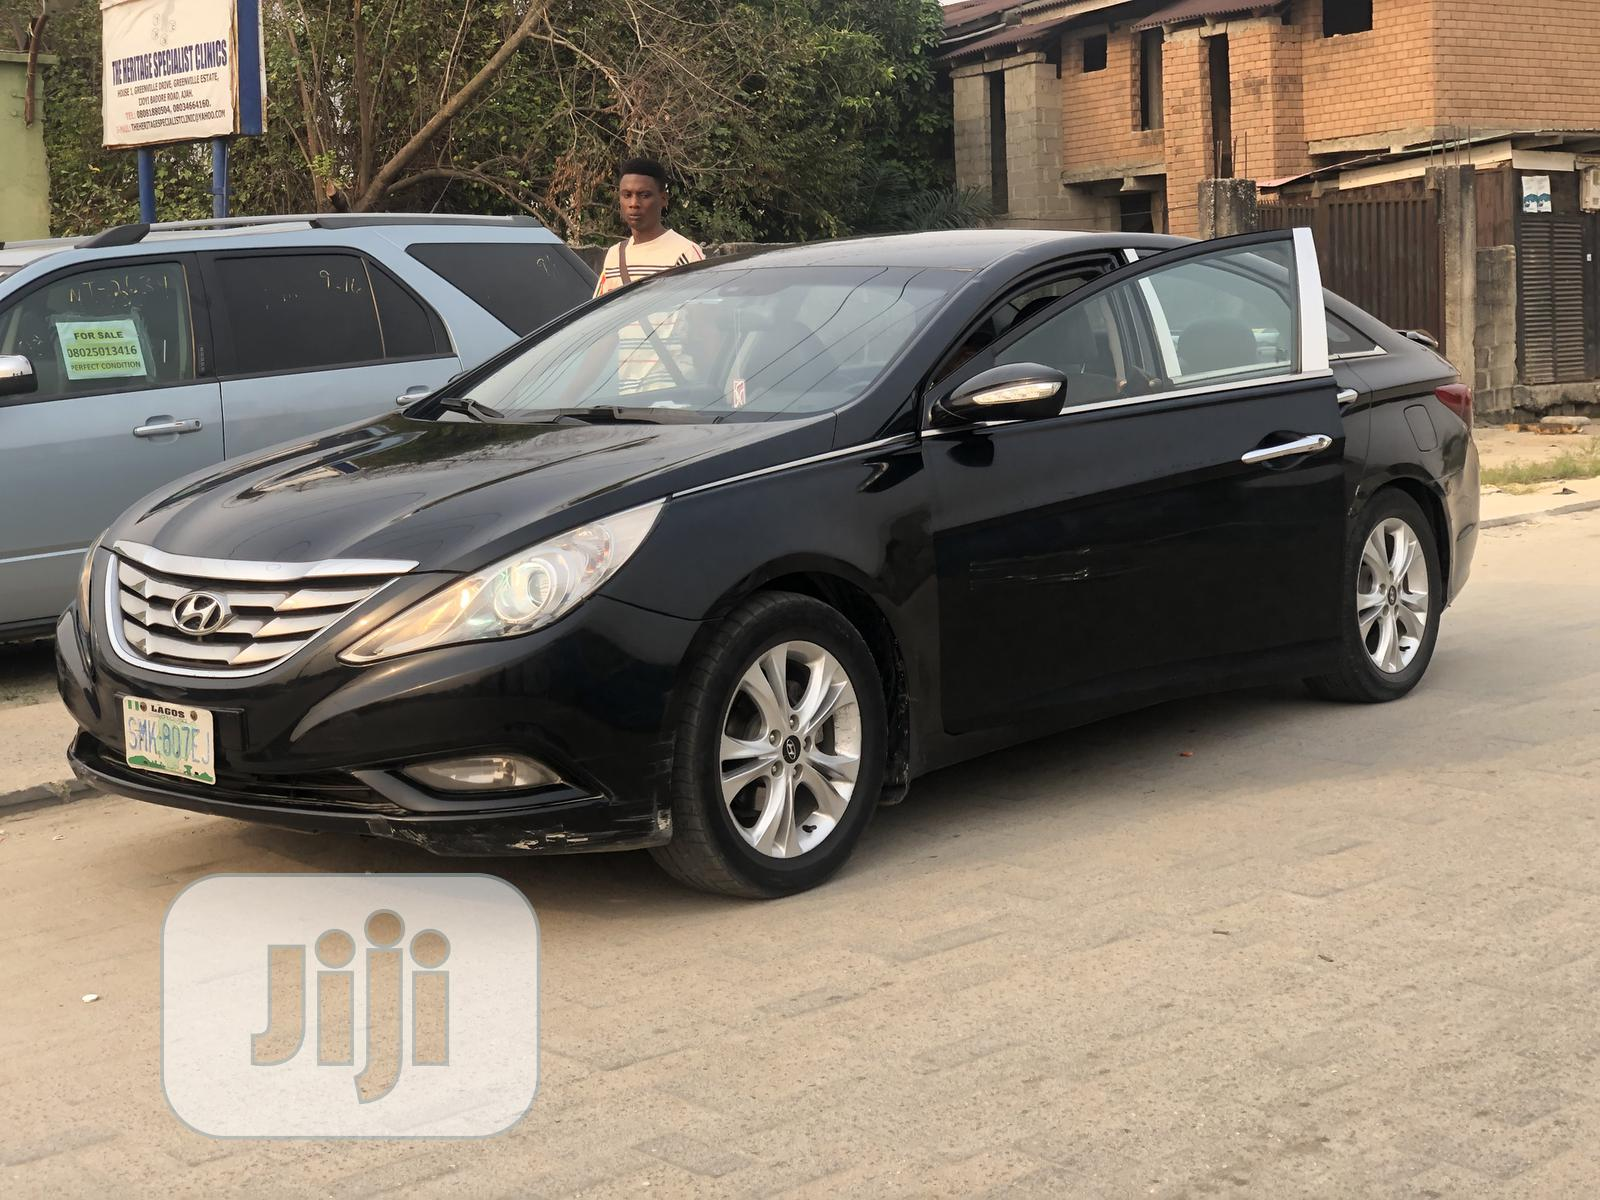 Hyundai Sonata 2012 Black | Cars for sale in Lekki, Lagos State, Nigeria